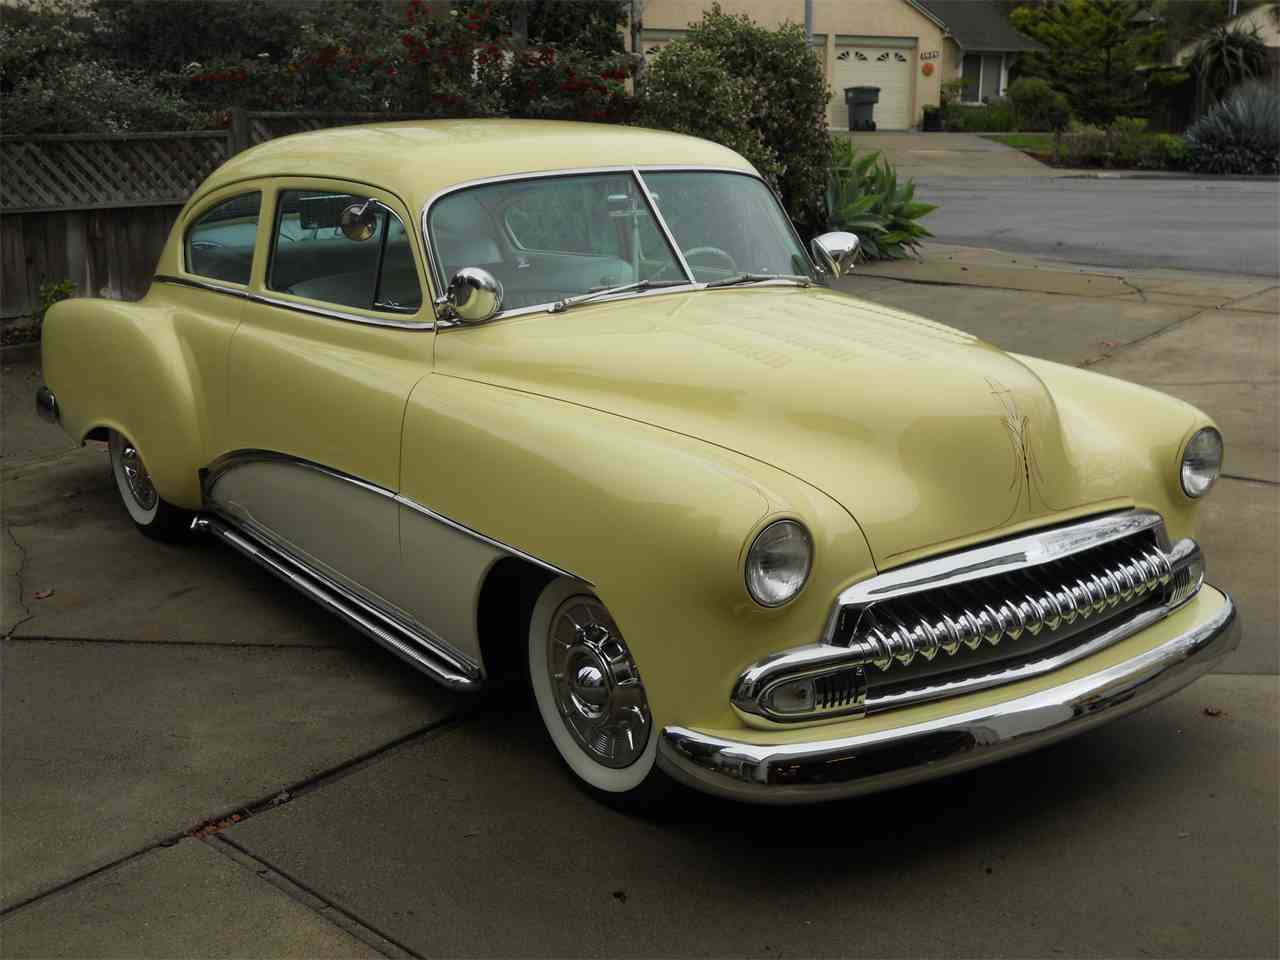 All Chevy 1951 chevrolet fleetline : 1951 to 1953 Chevrolet Fleetline for Sale on ClassicCars.com - 5 ...